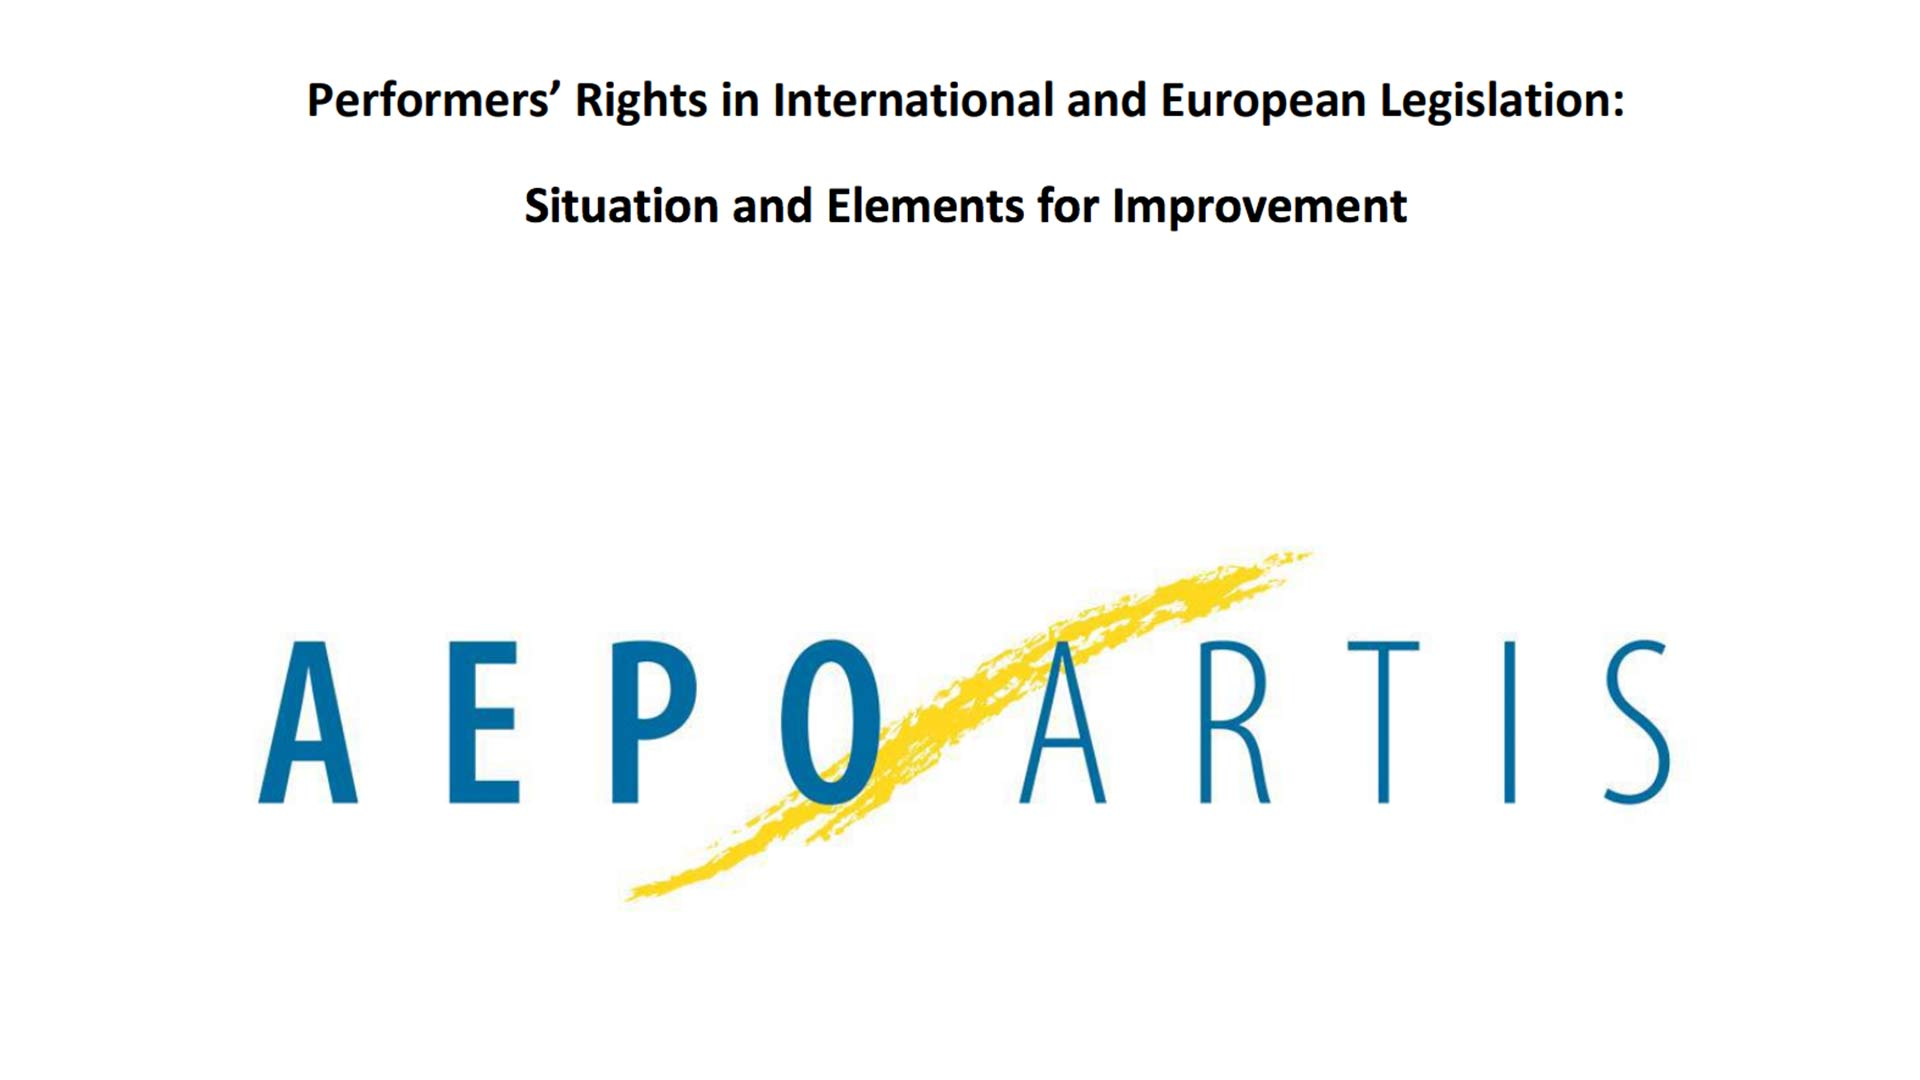 Fairness Rocks News AEPO-ARTIS Study: Performers' Rights in International and European Legislation: Situation and Elements for Improvement